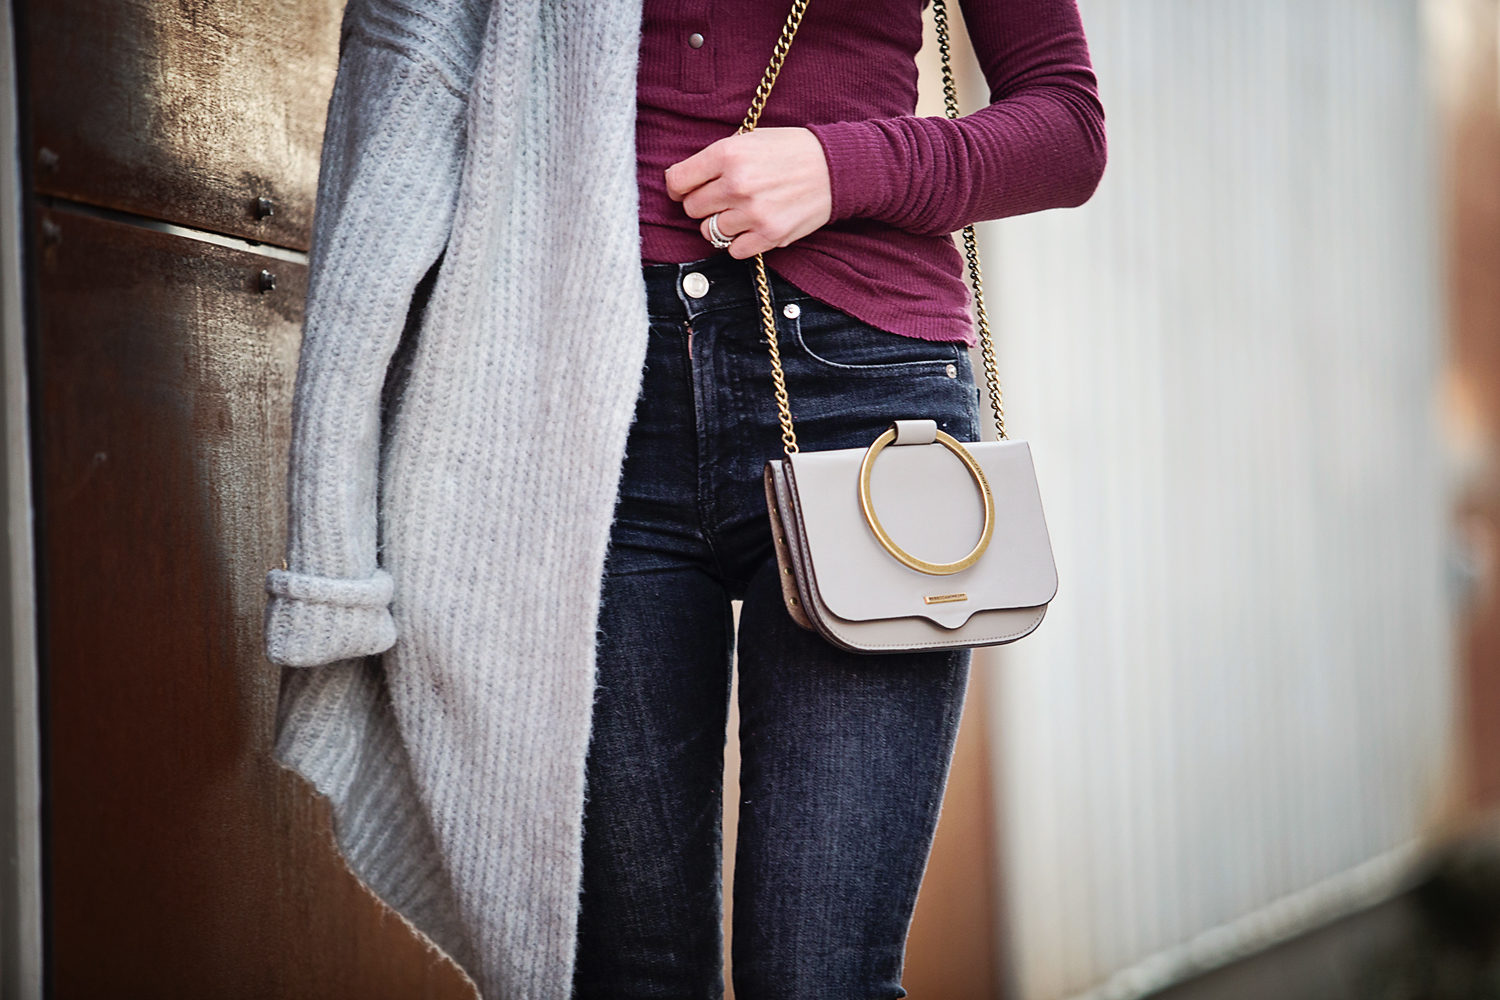 The motherchic wearing rebecca minkoff crossbody bag